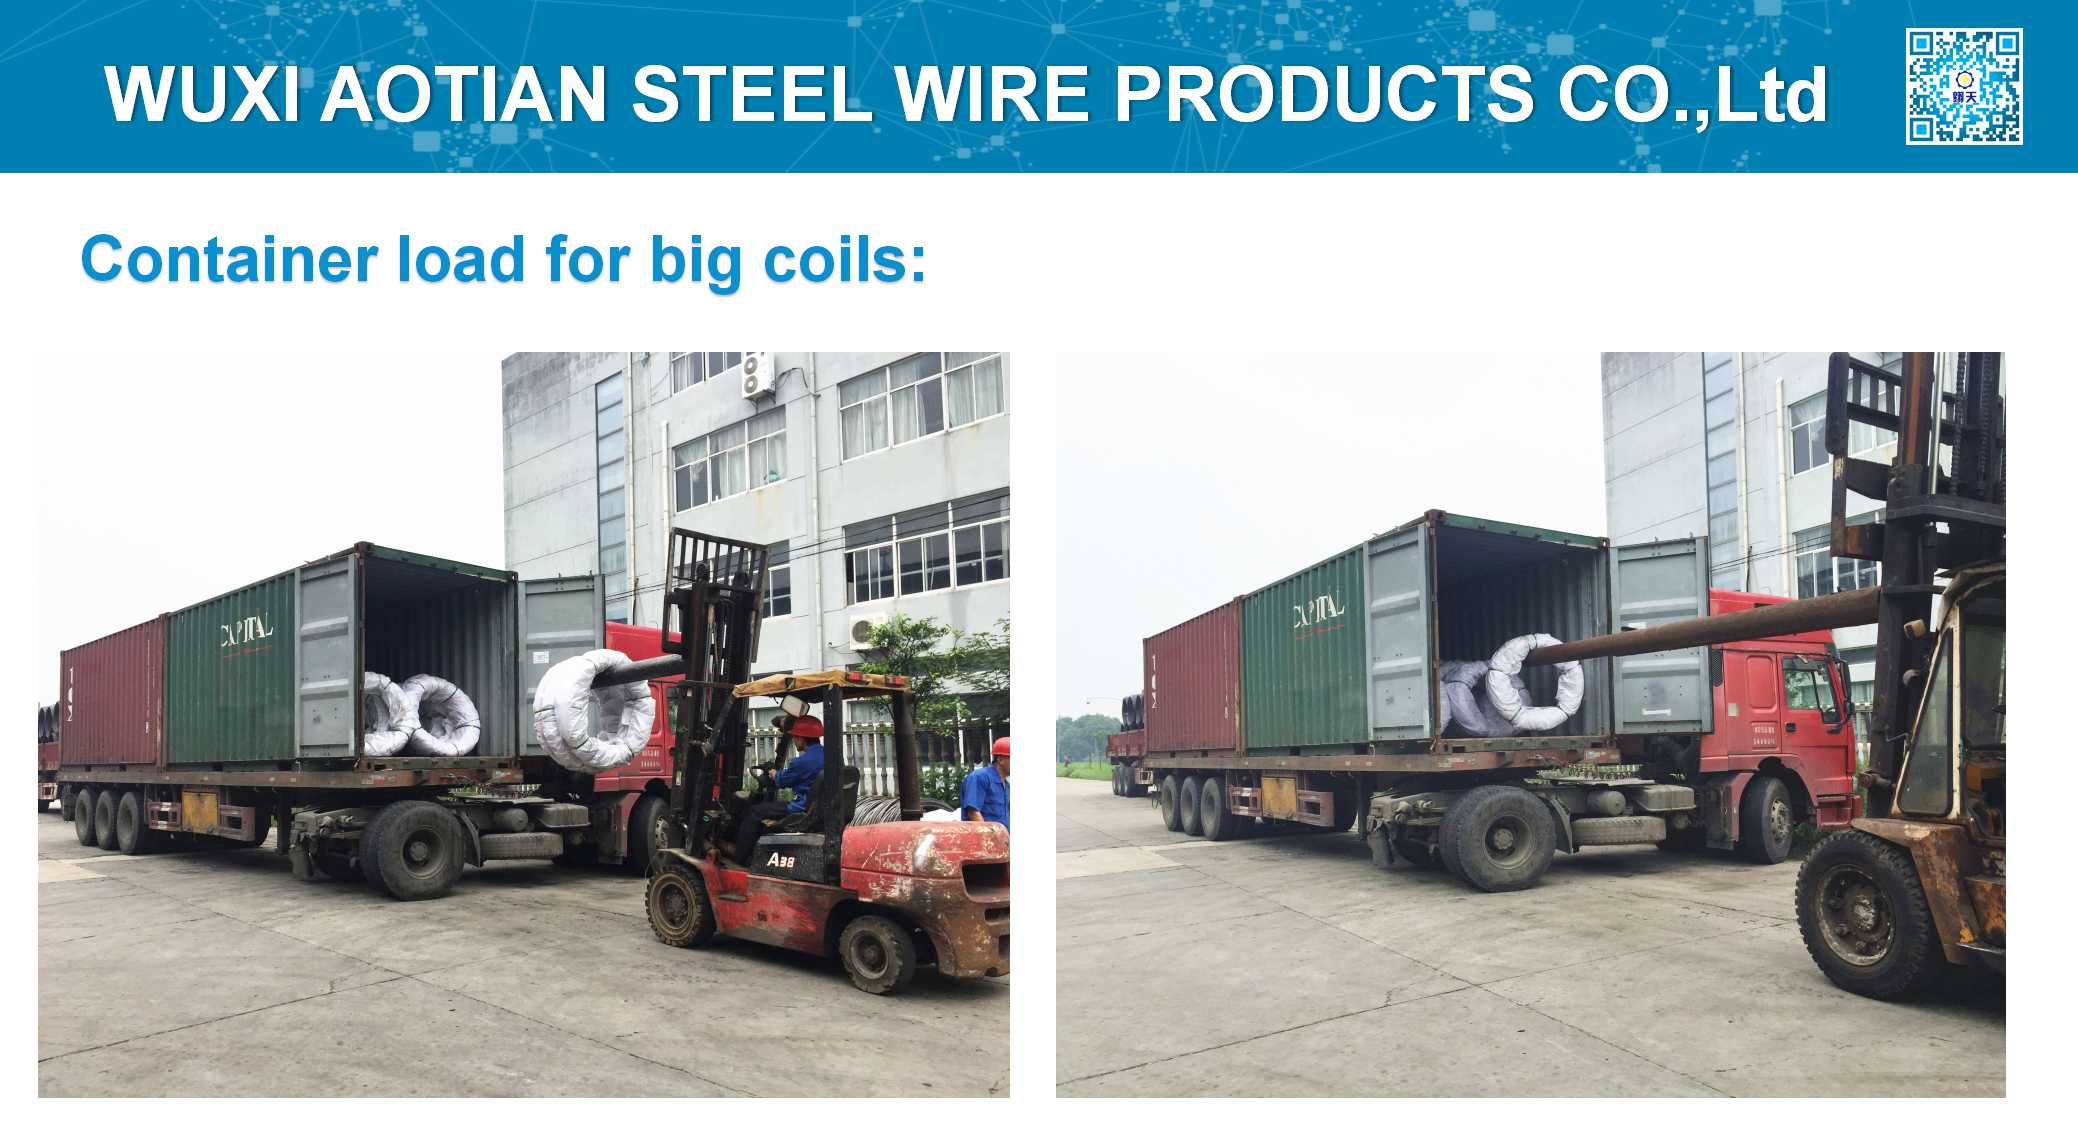 Container load for big coils